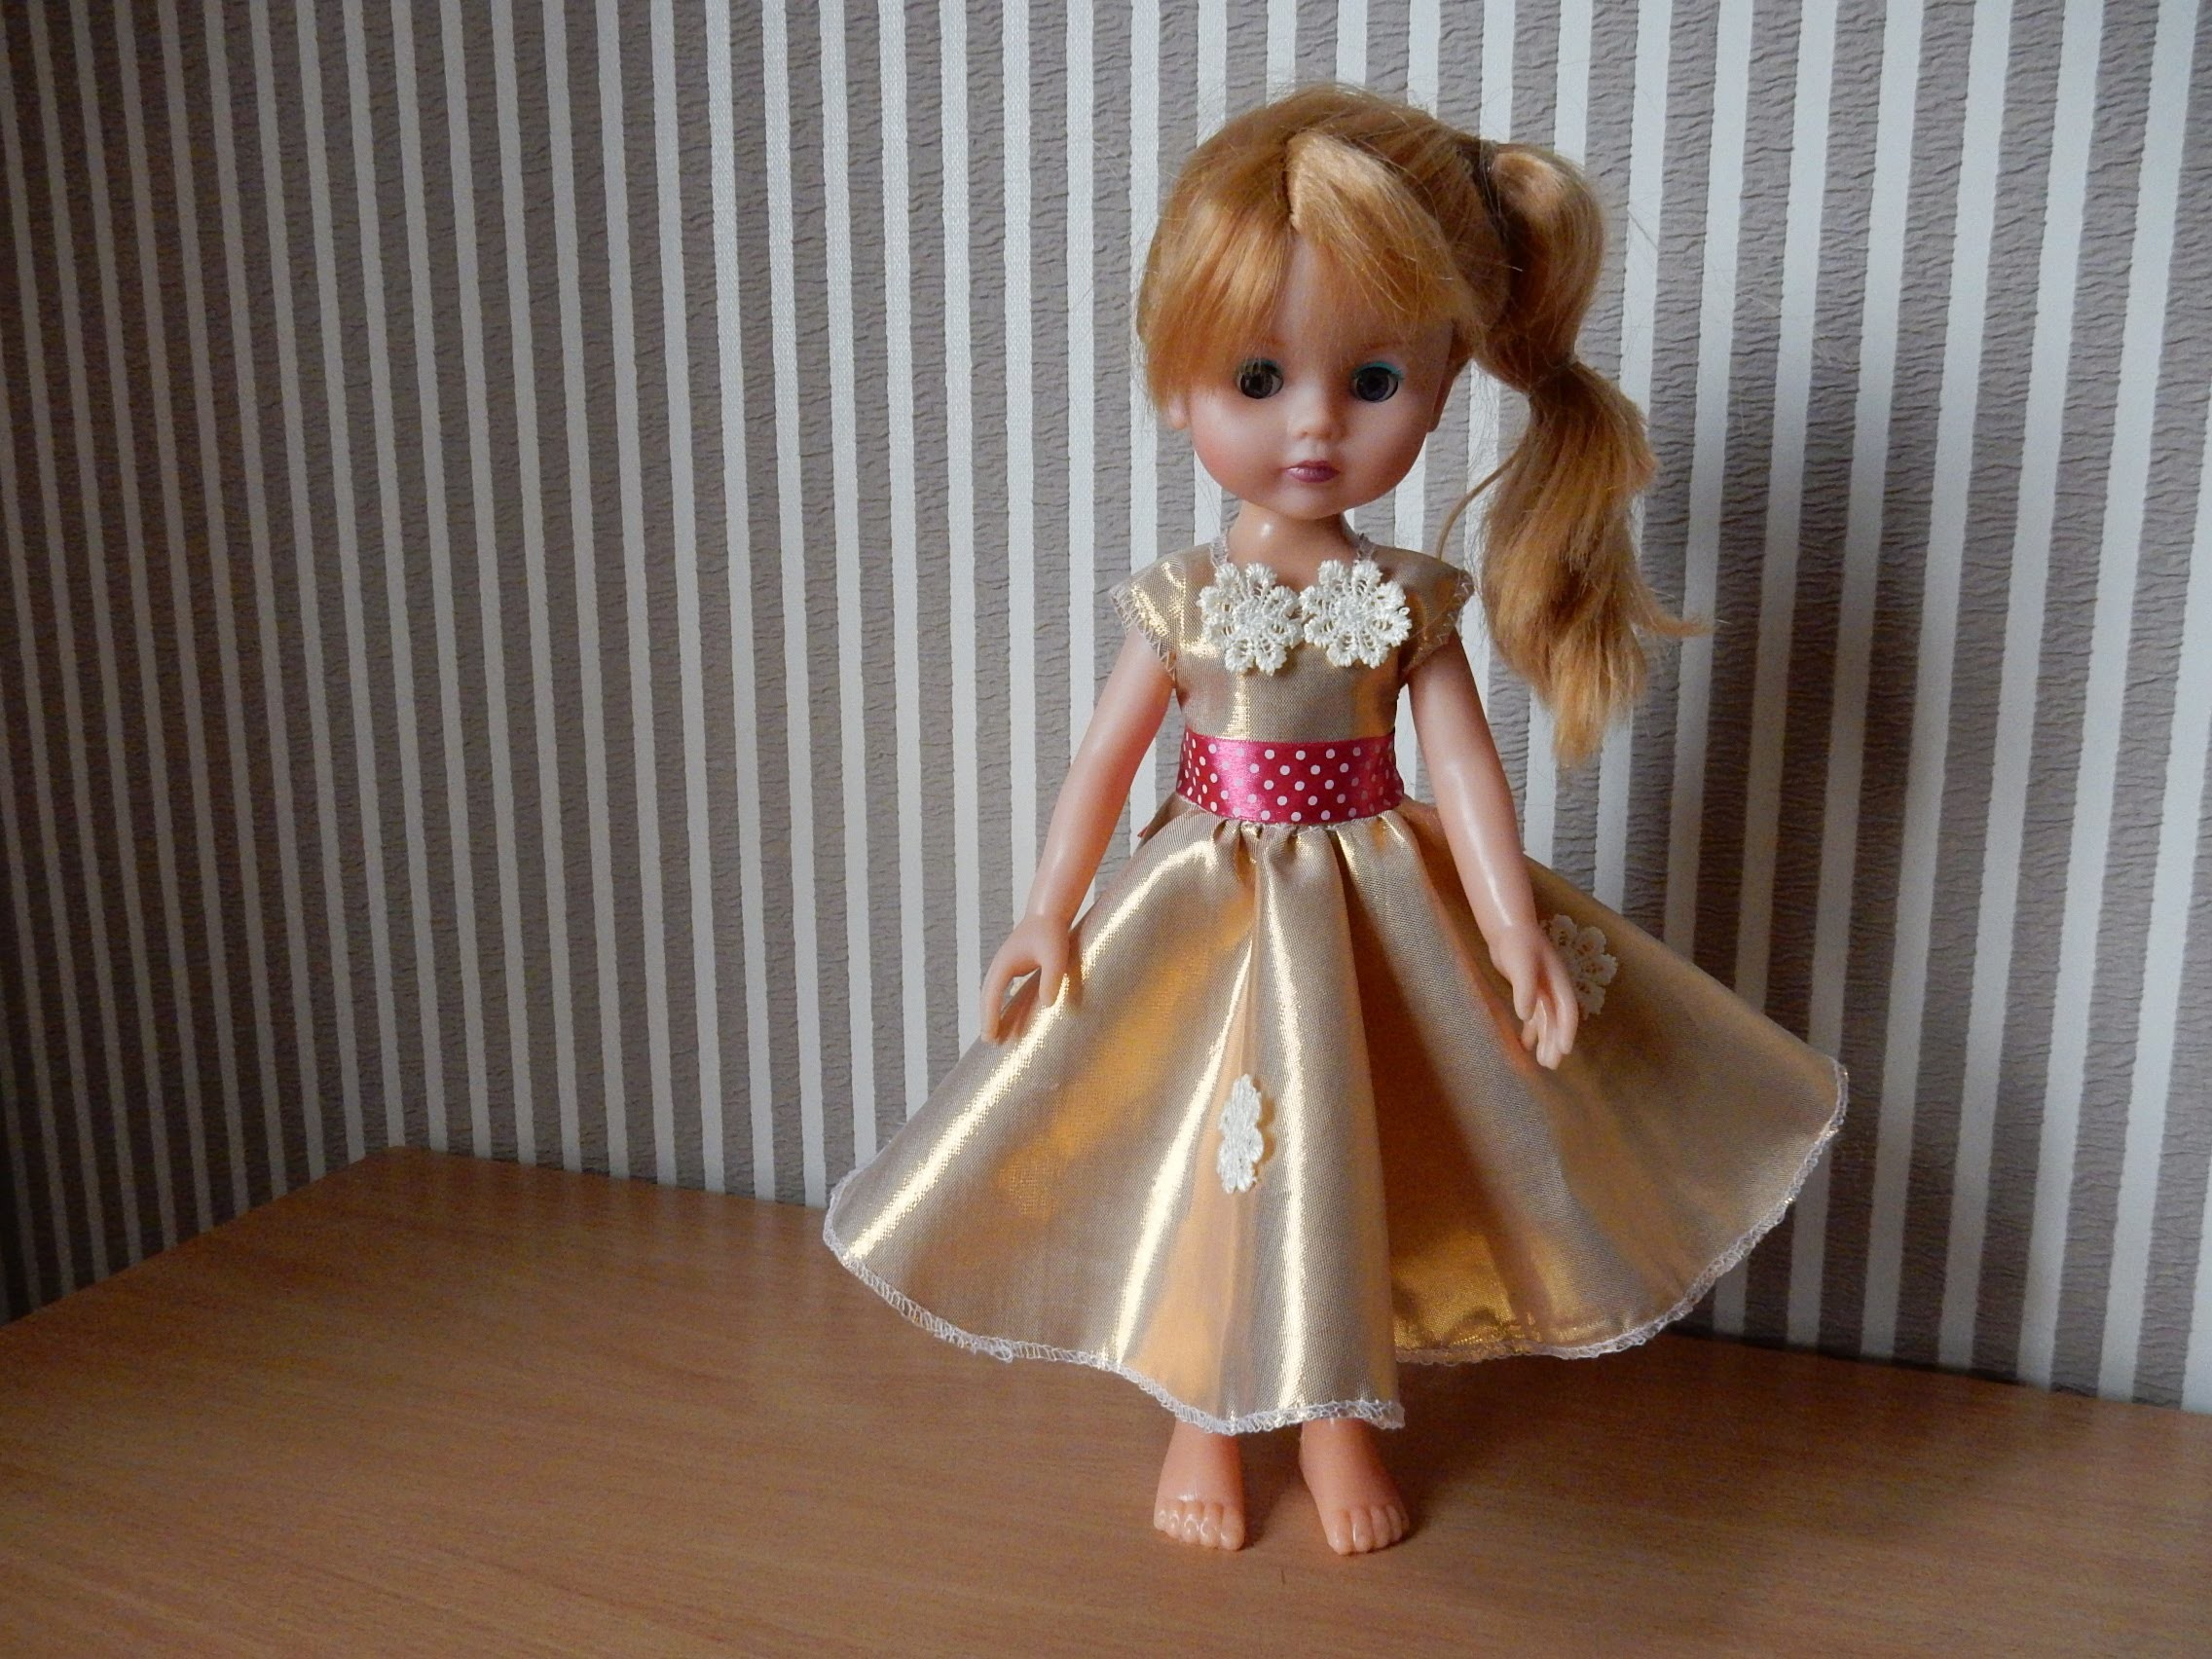 How to Make a Doll Dress tutorial Clothing for dolls